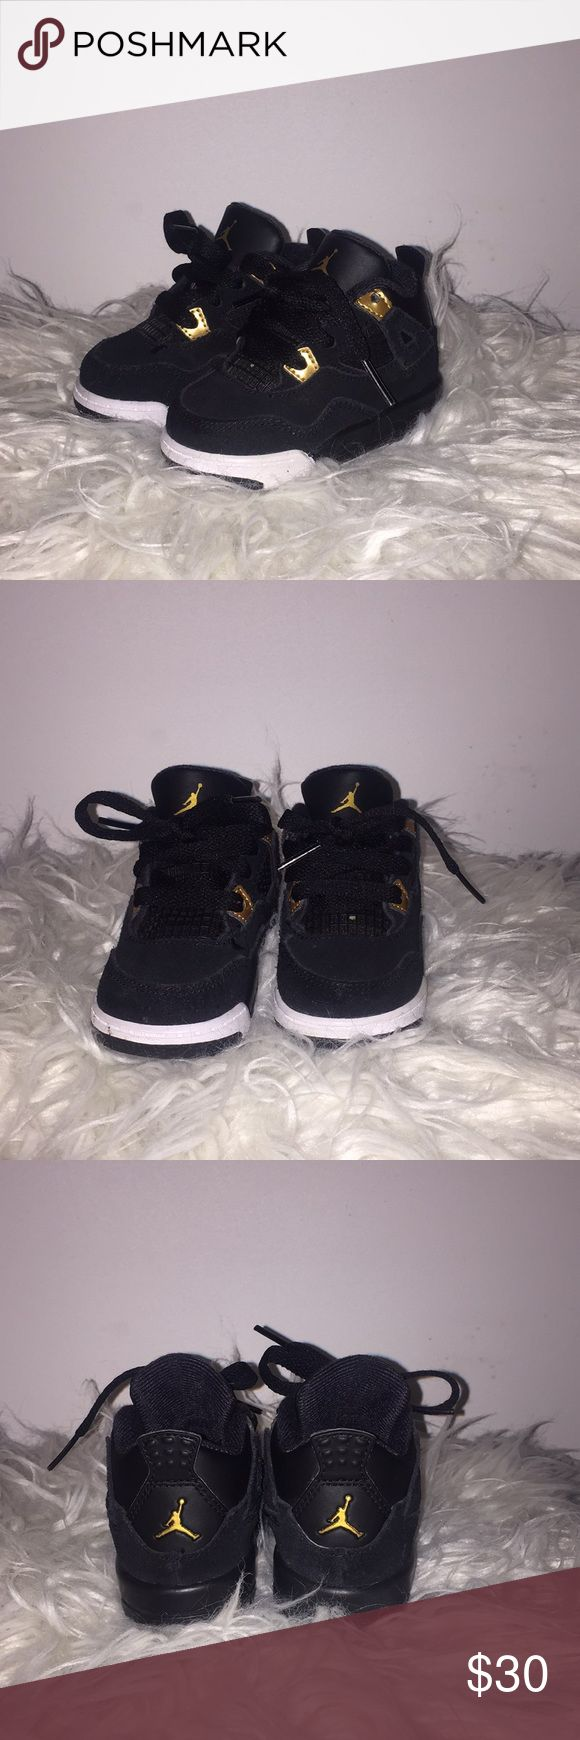 Toddler Jordan 4s Gently Used - Black/Metallic Gold- White -- still in very good condition - Size 4C Jordan Shoes Sneakers